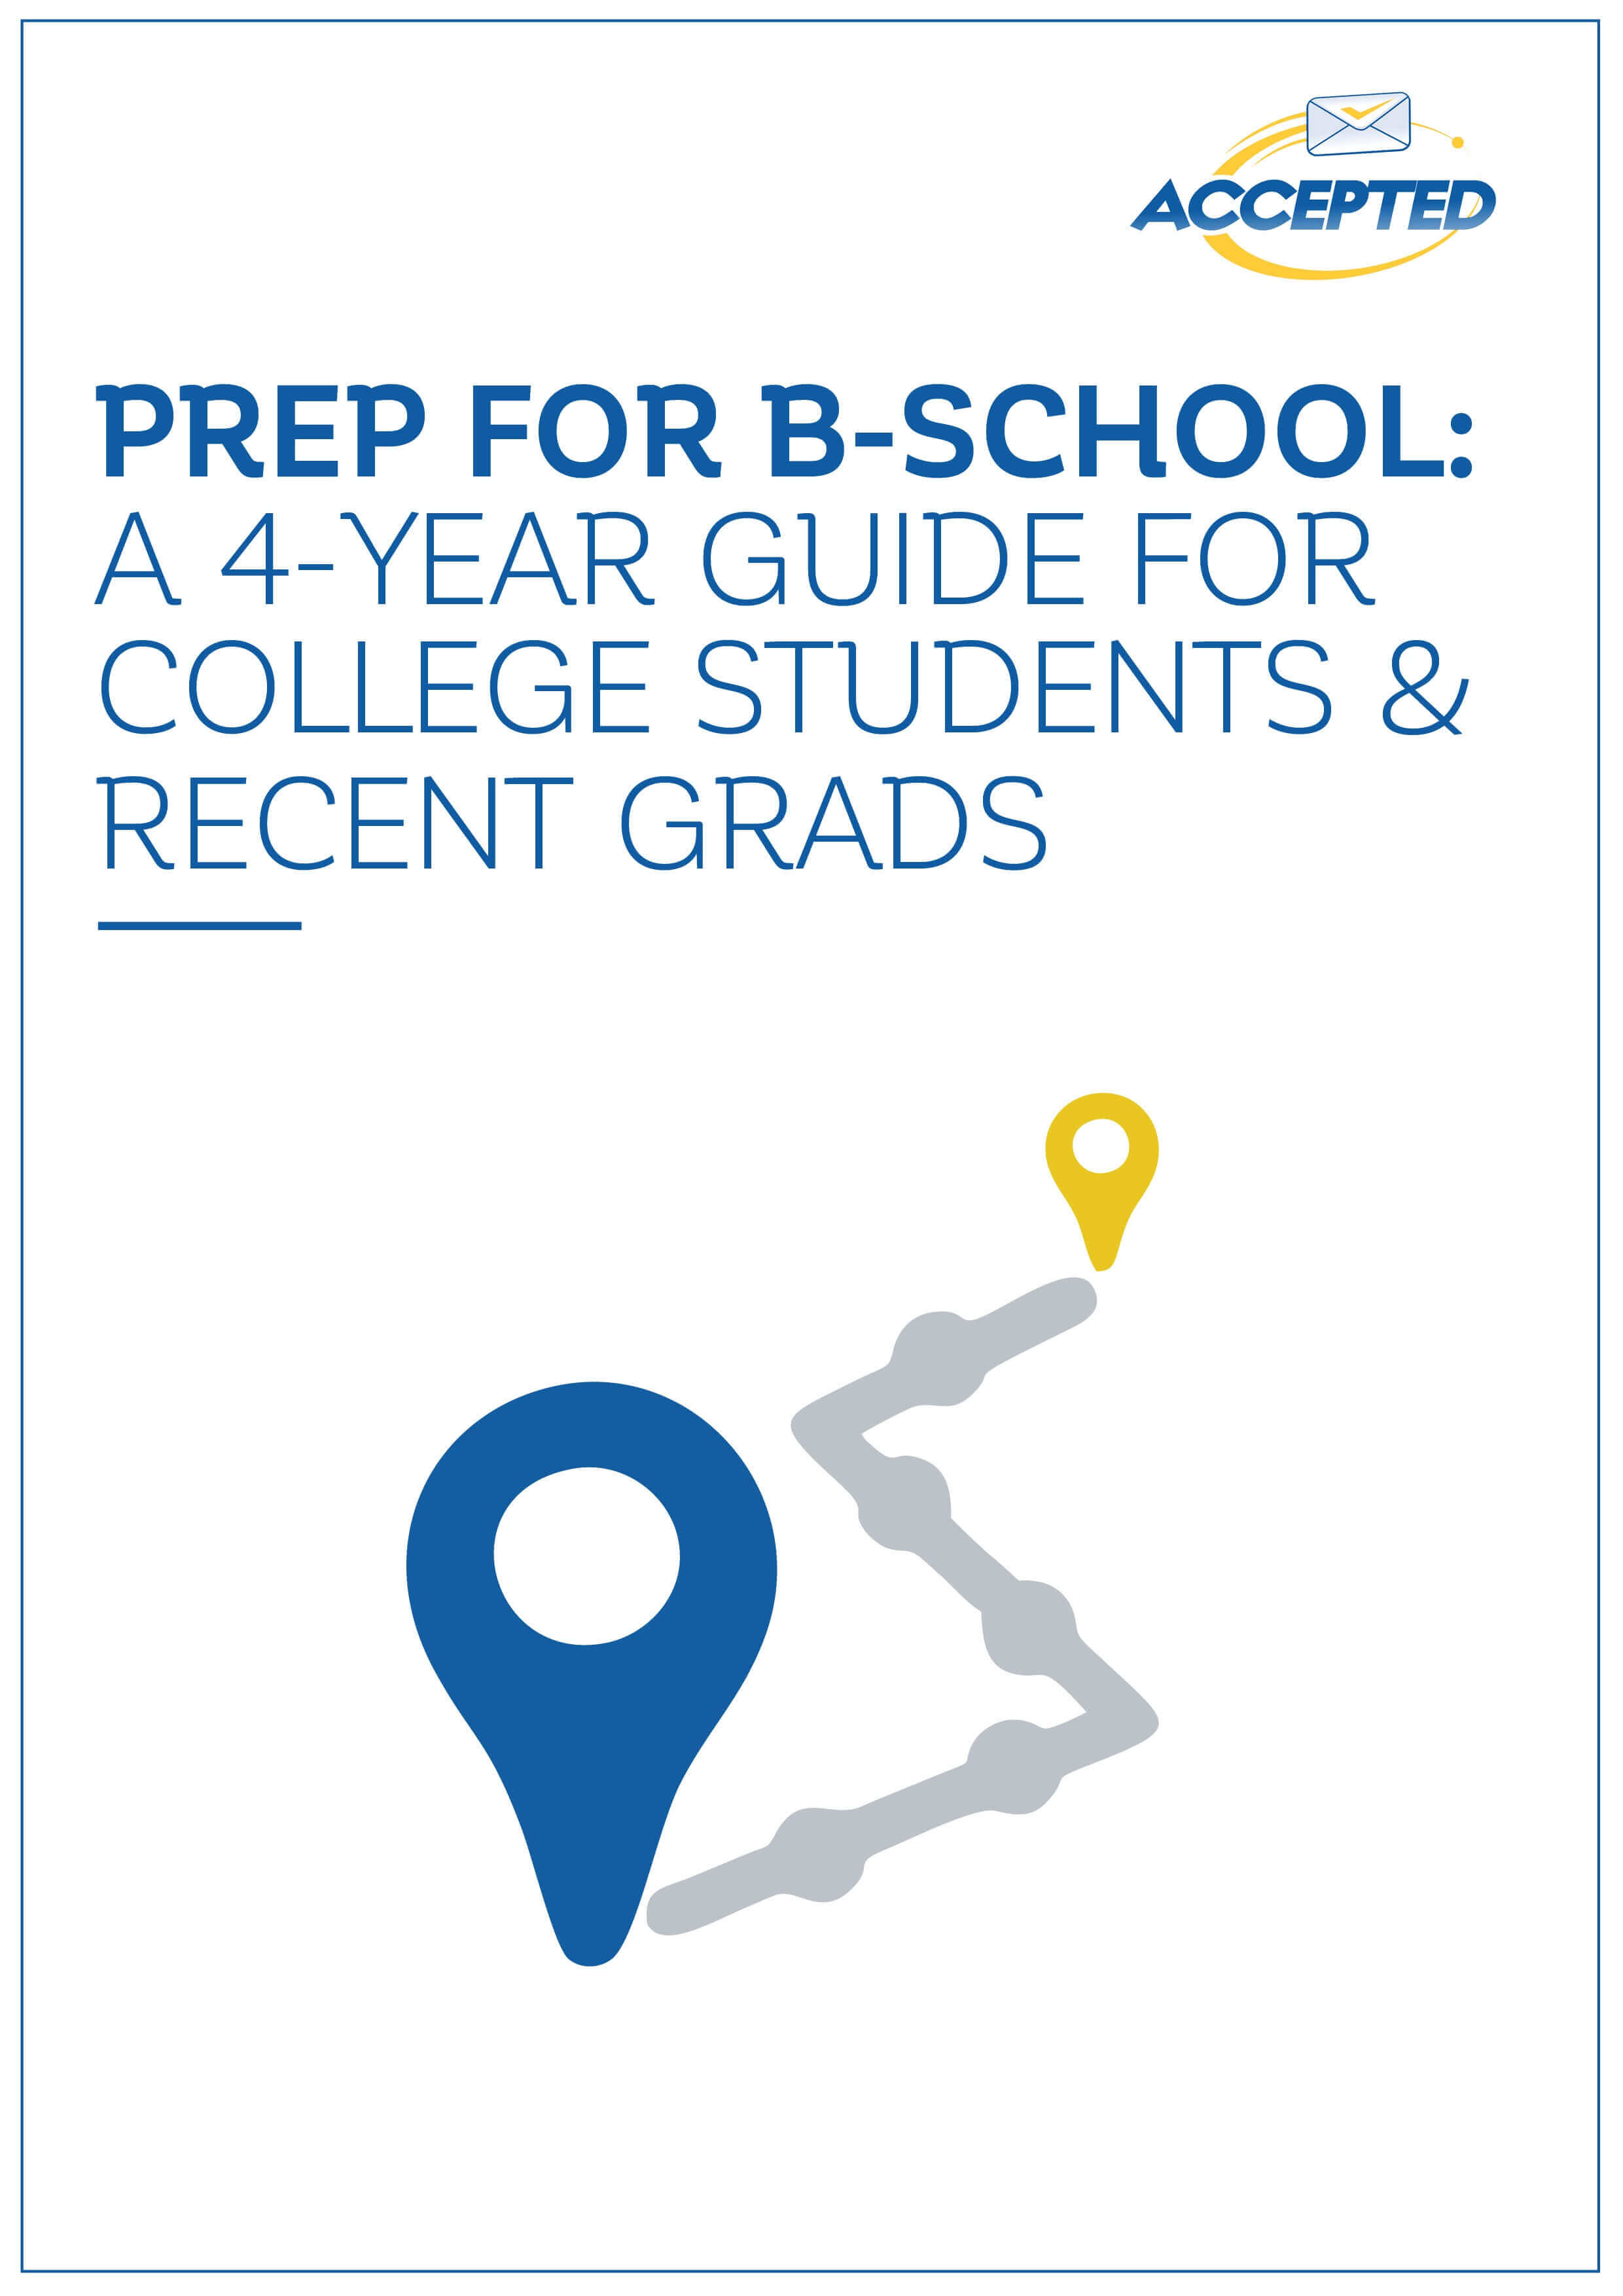 Prep_for_B-School_Year_Guide_for_College_Students_and_Recent_Grads.jpg